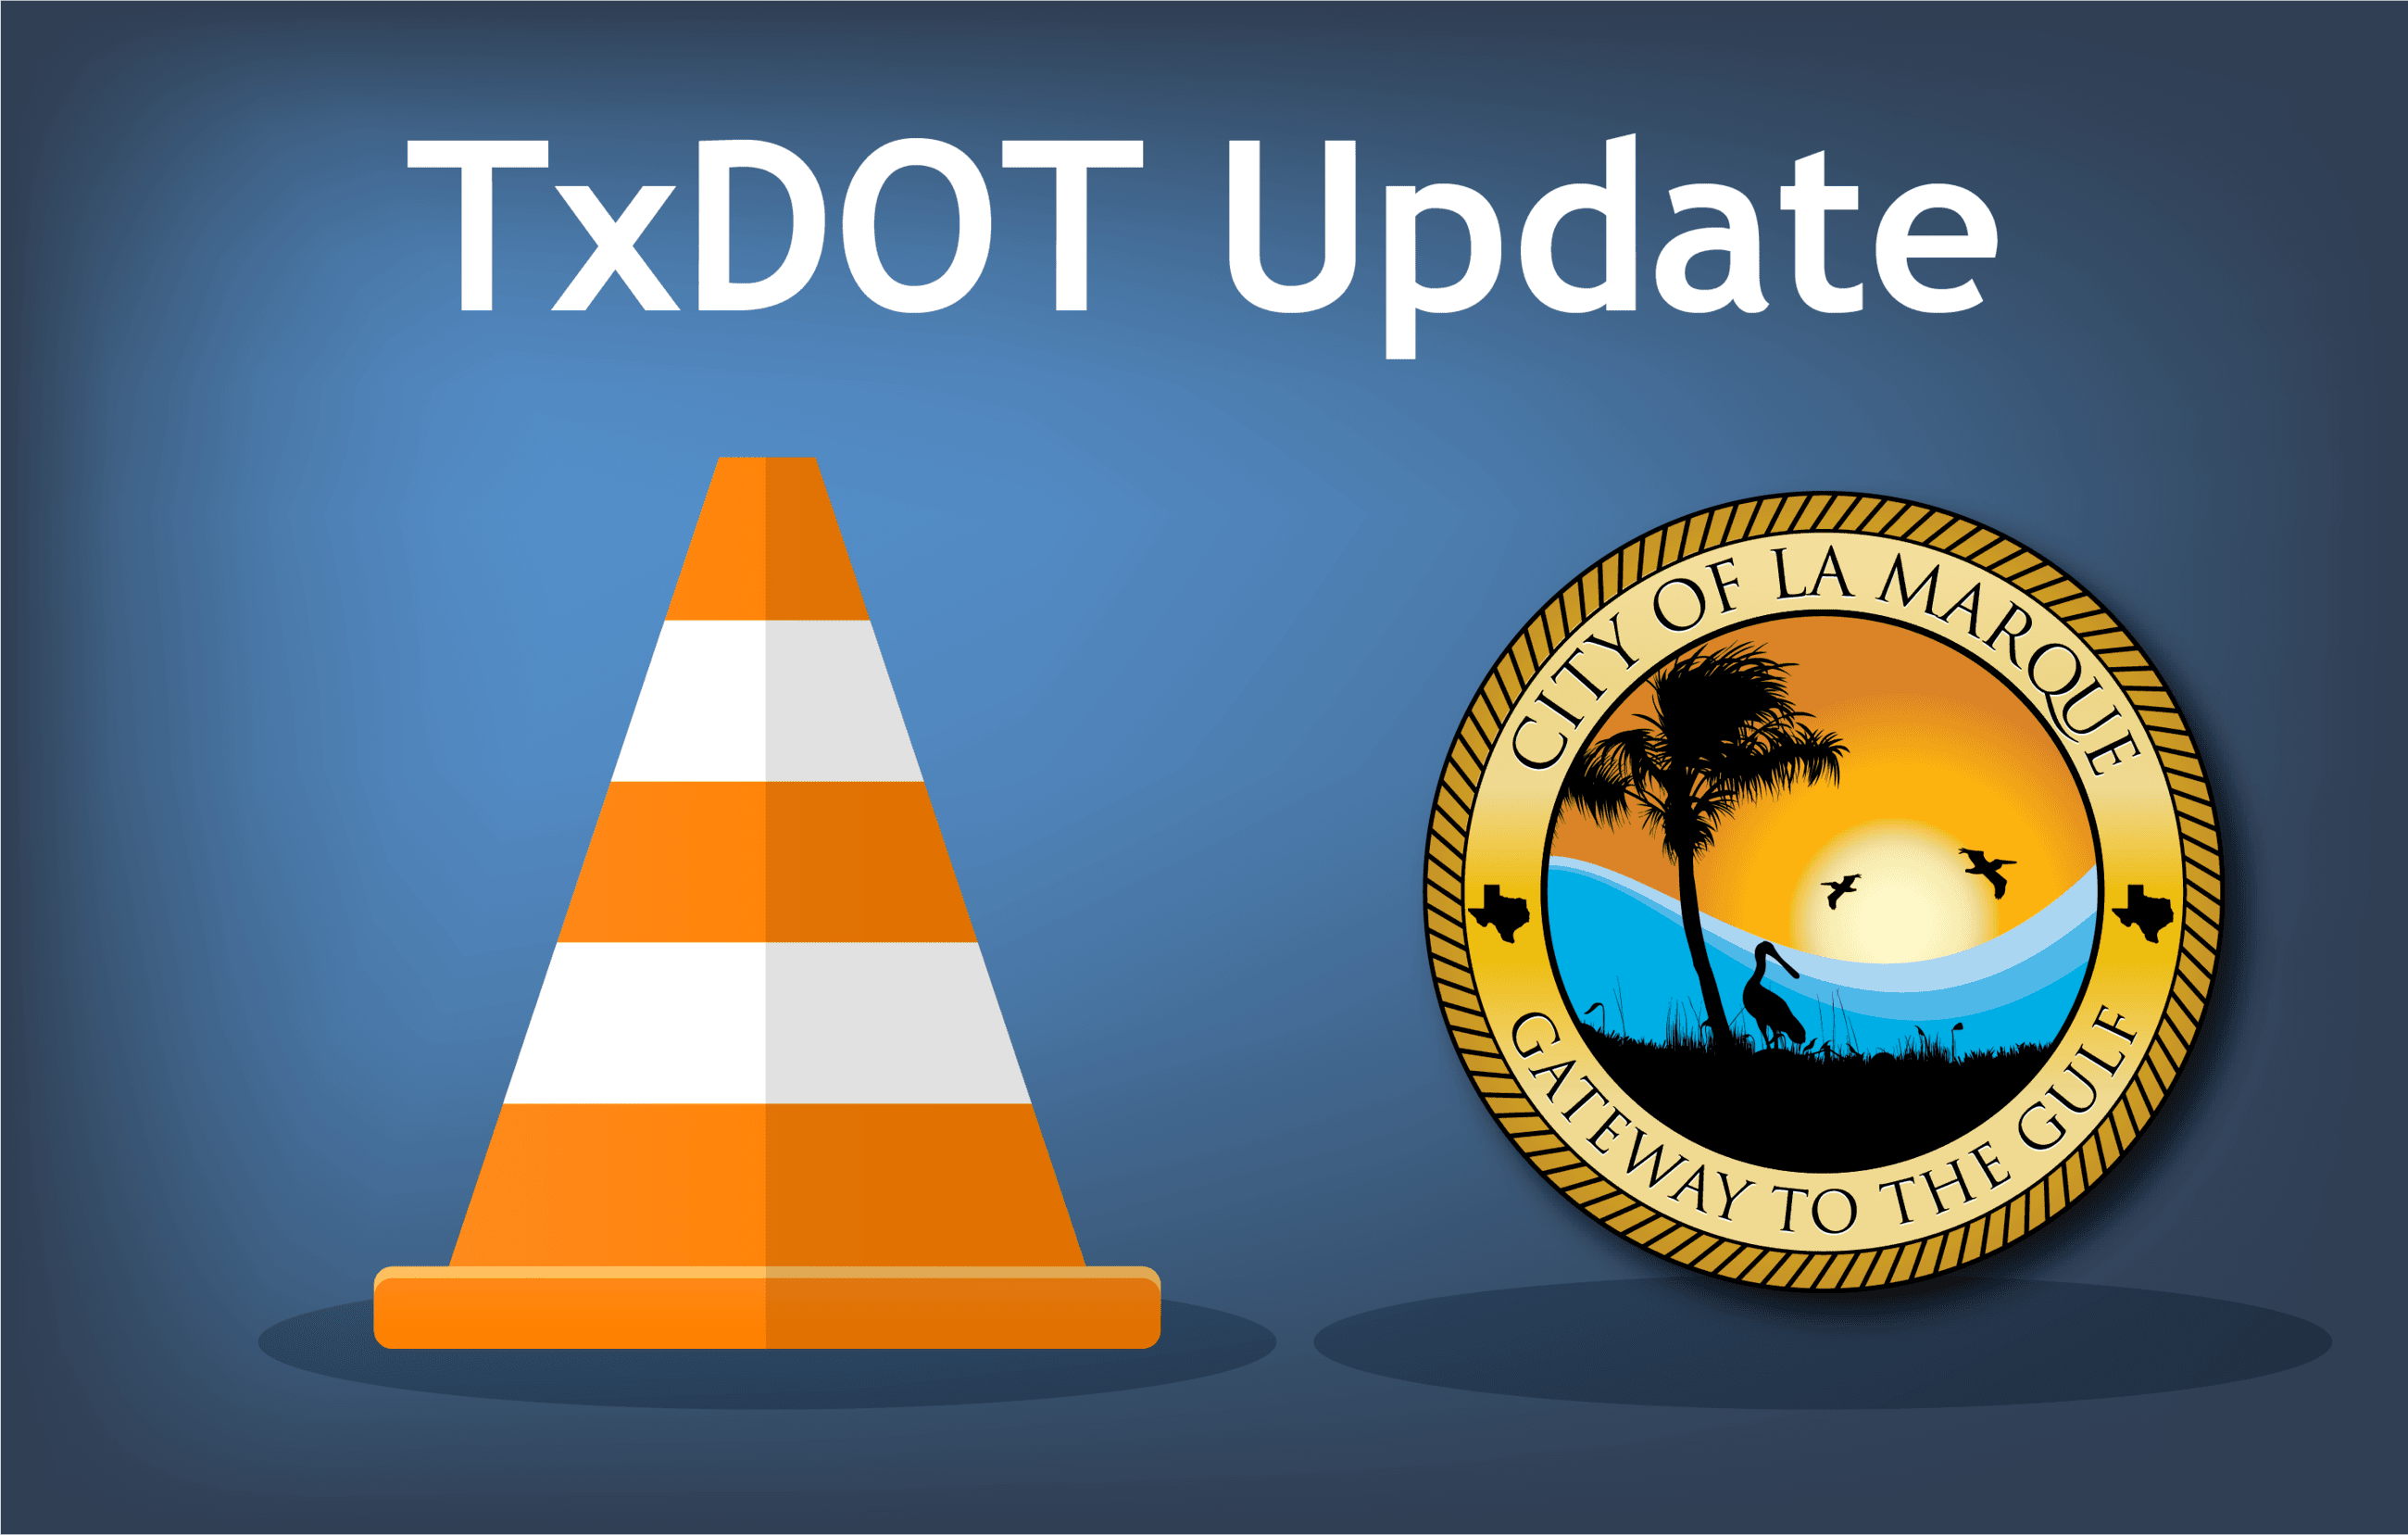 TxDOT Update_ traffic cone with city logo